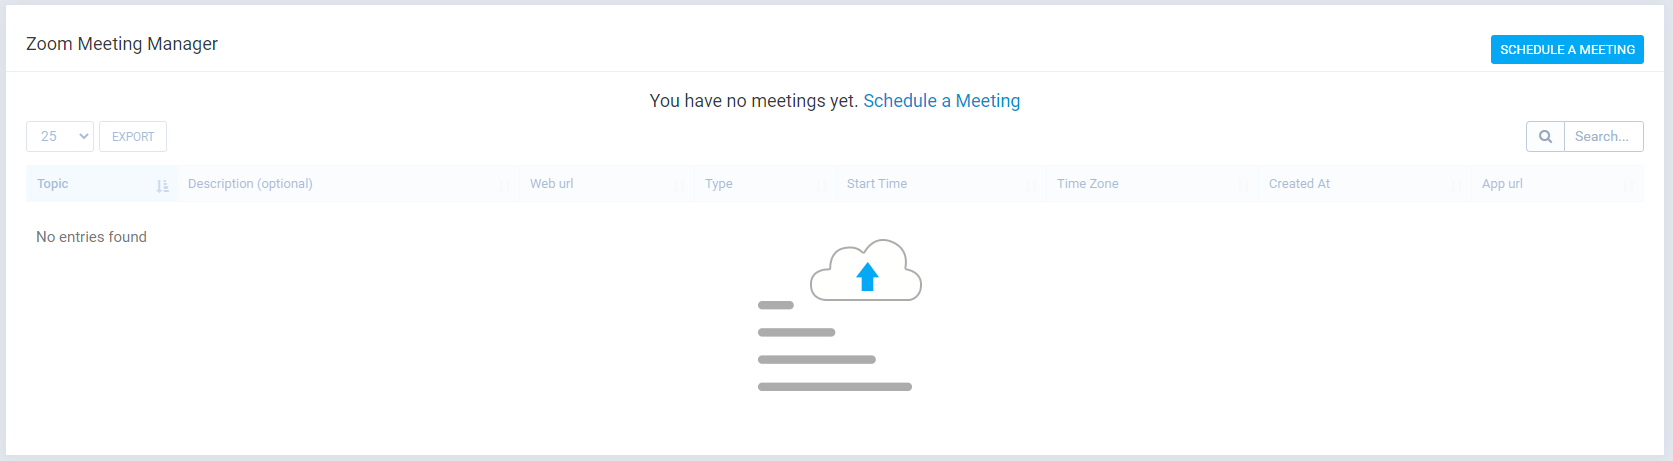 Zoom Meeting Manager - 2